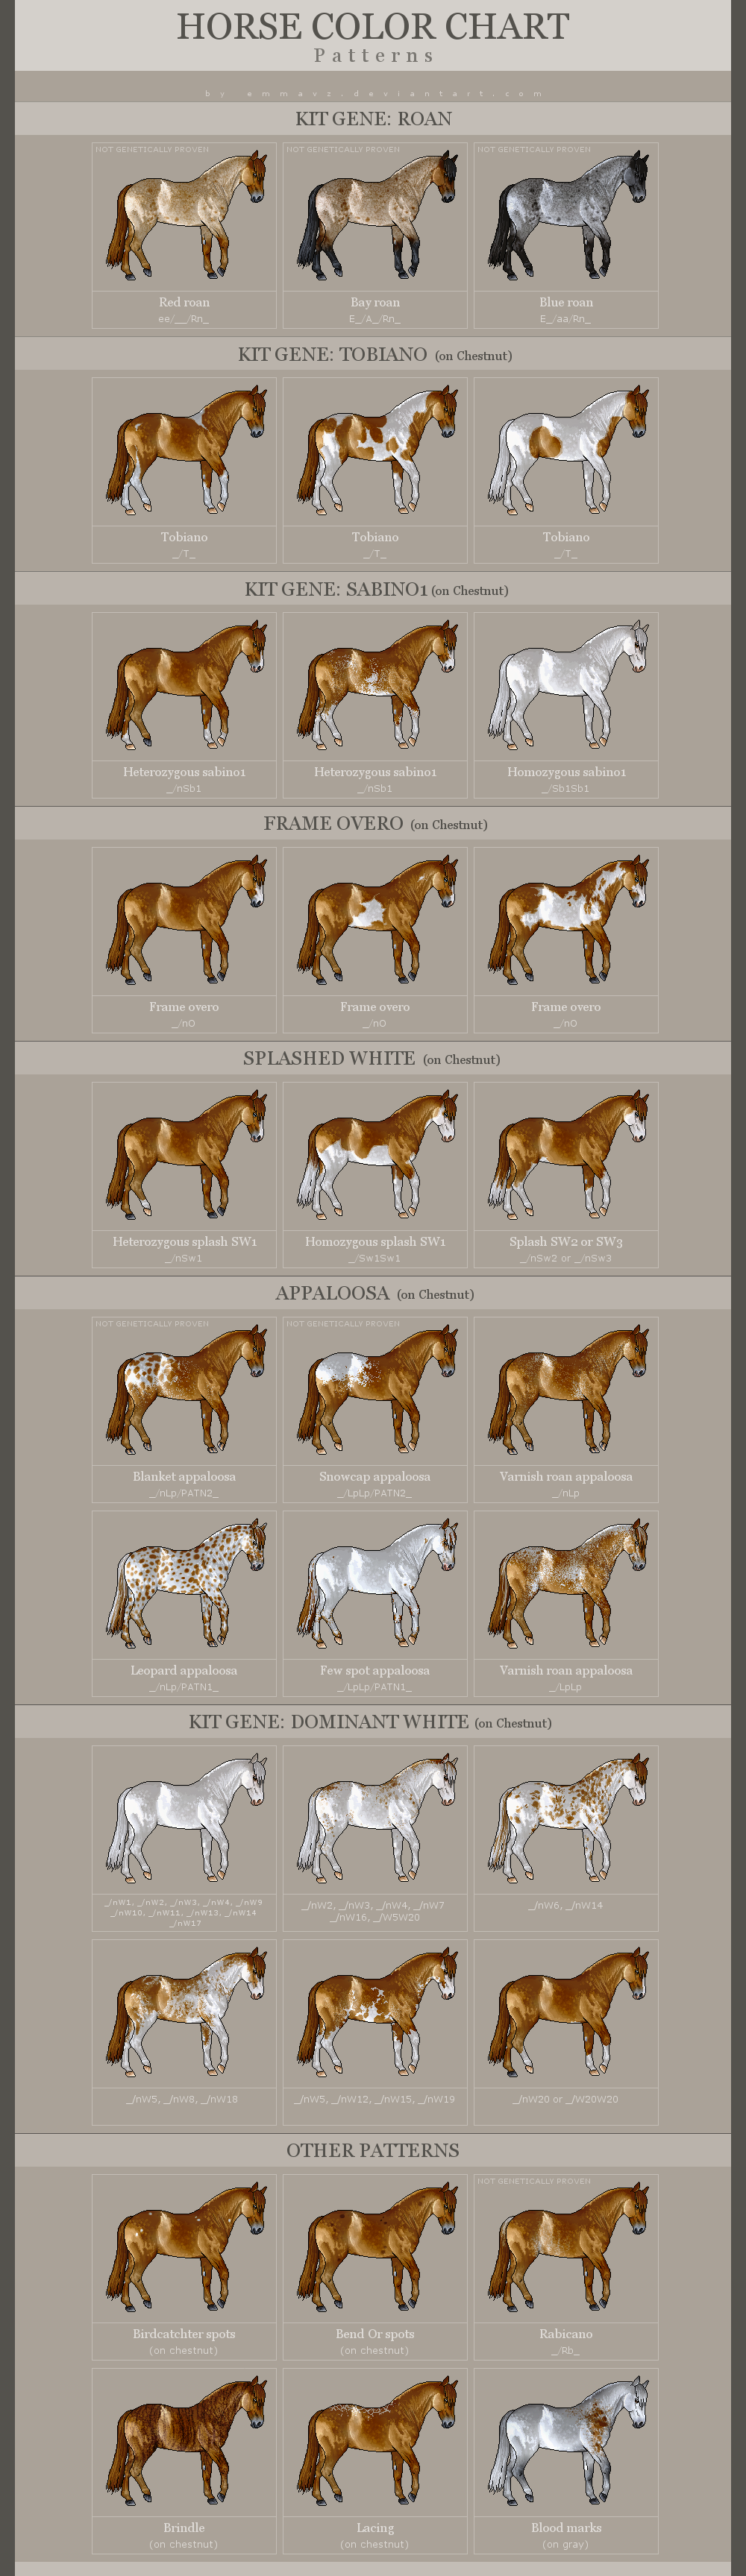 horse color patterns